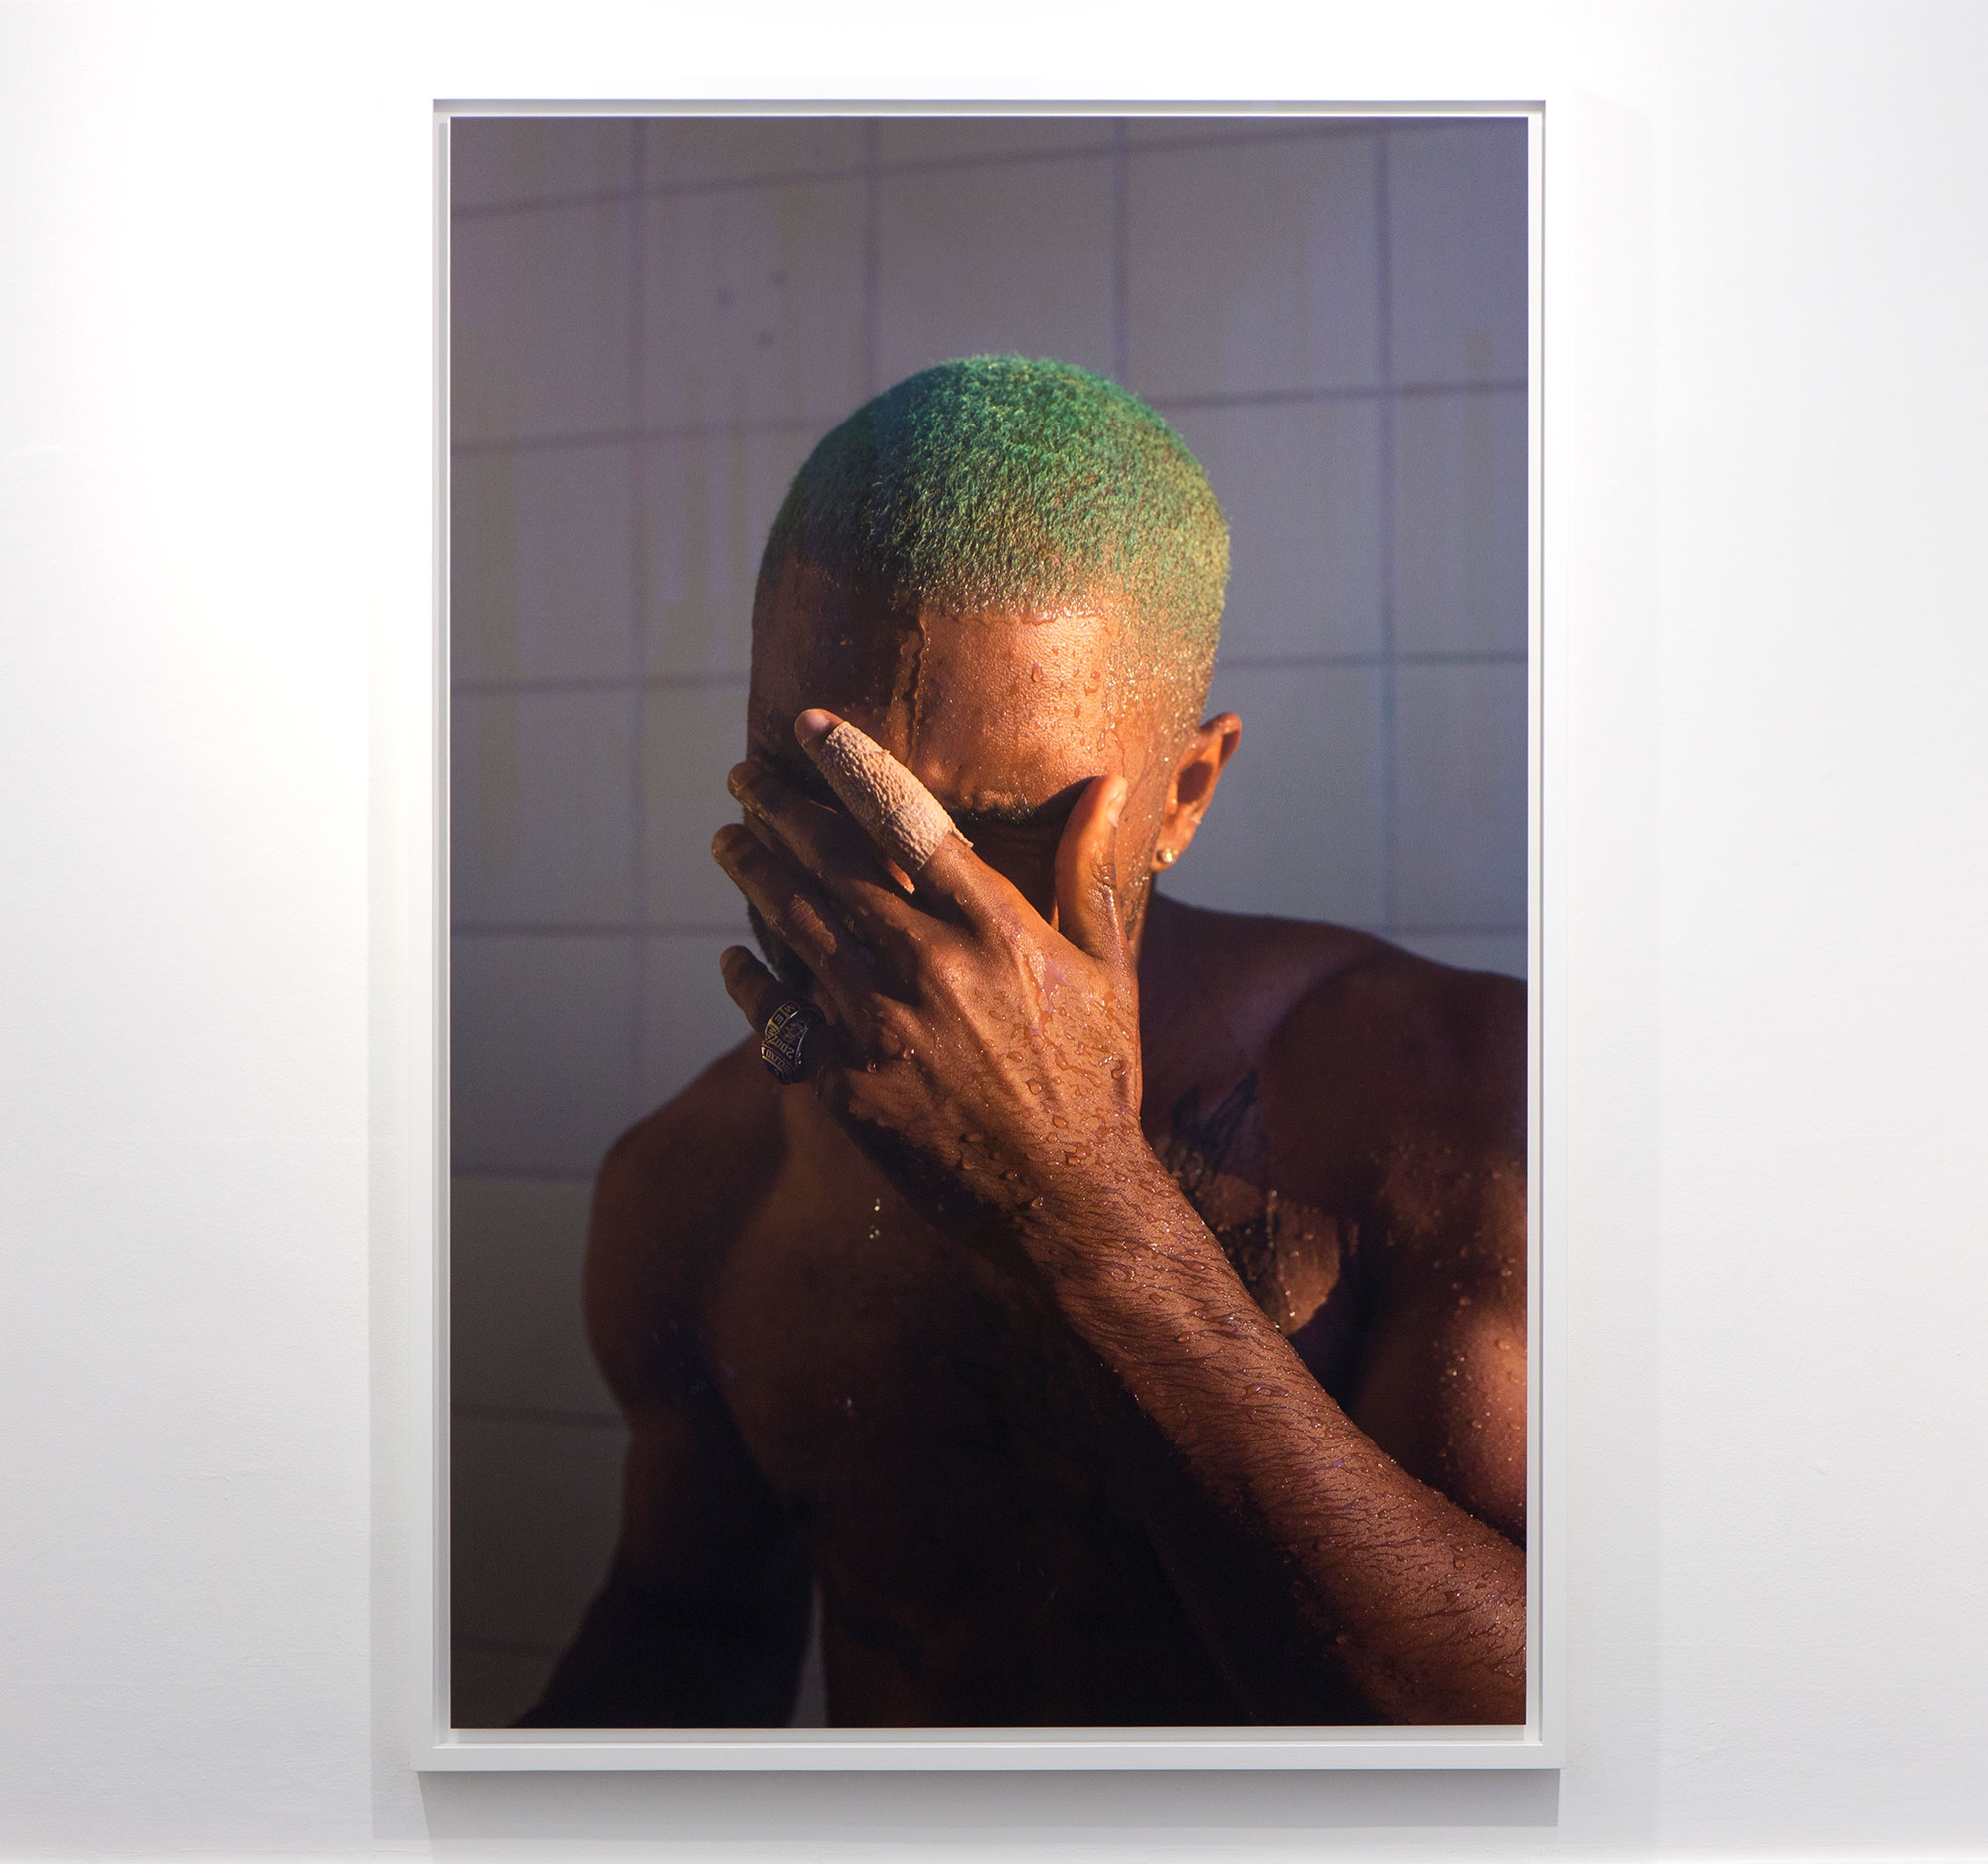 'Frank Ocean', Rebuilding the Future, 2018, IMMA.